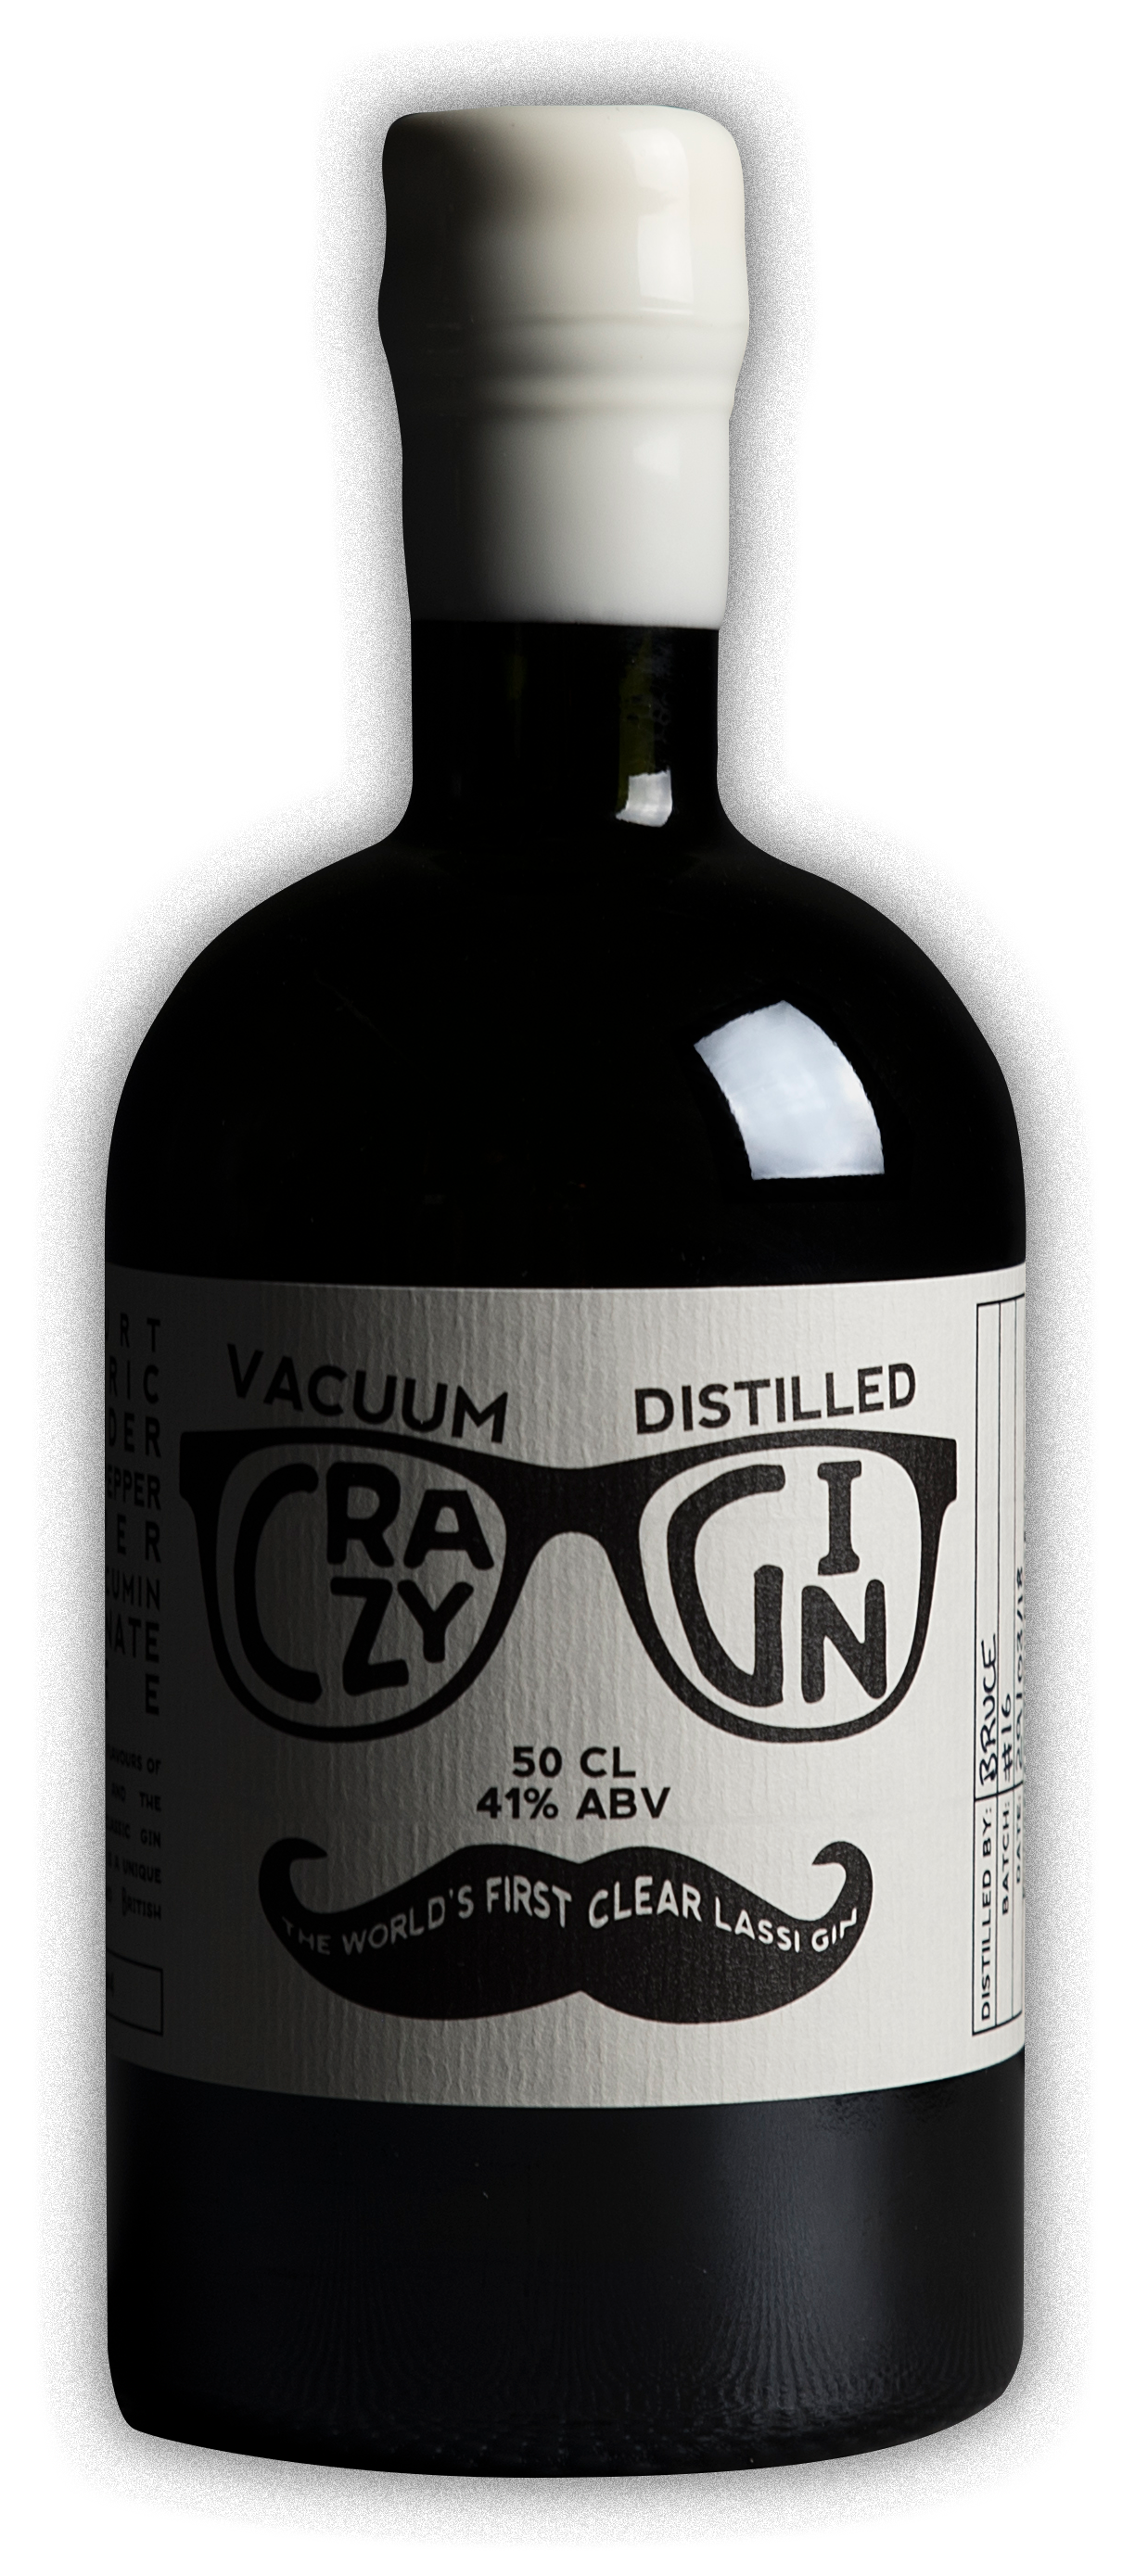 crazy gin bottle in online crazy co store